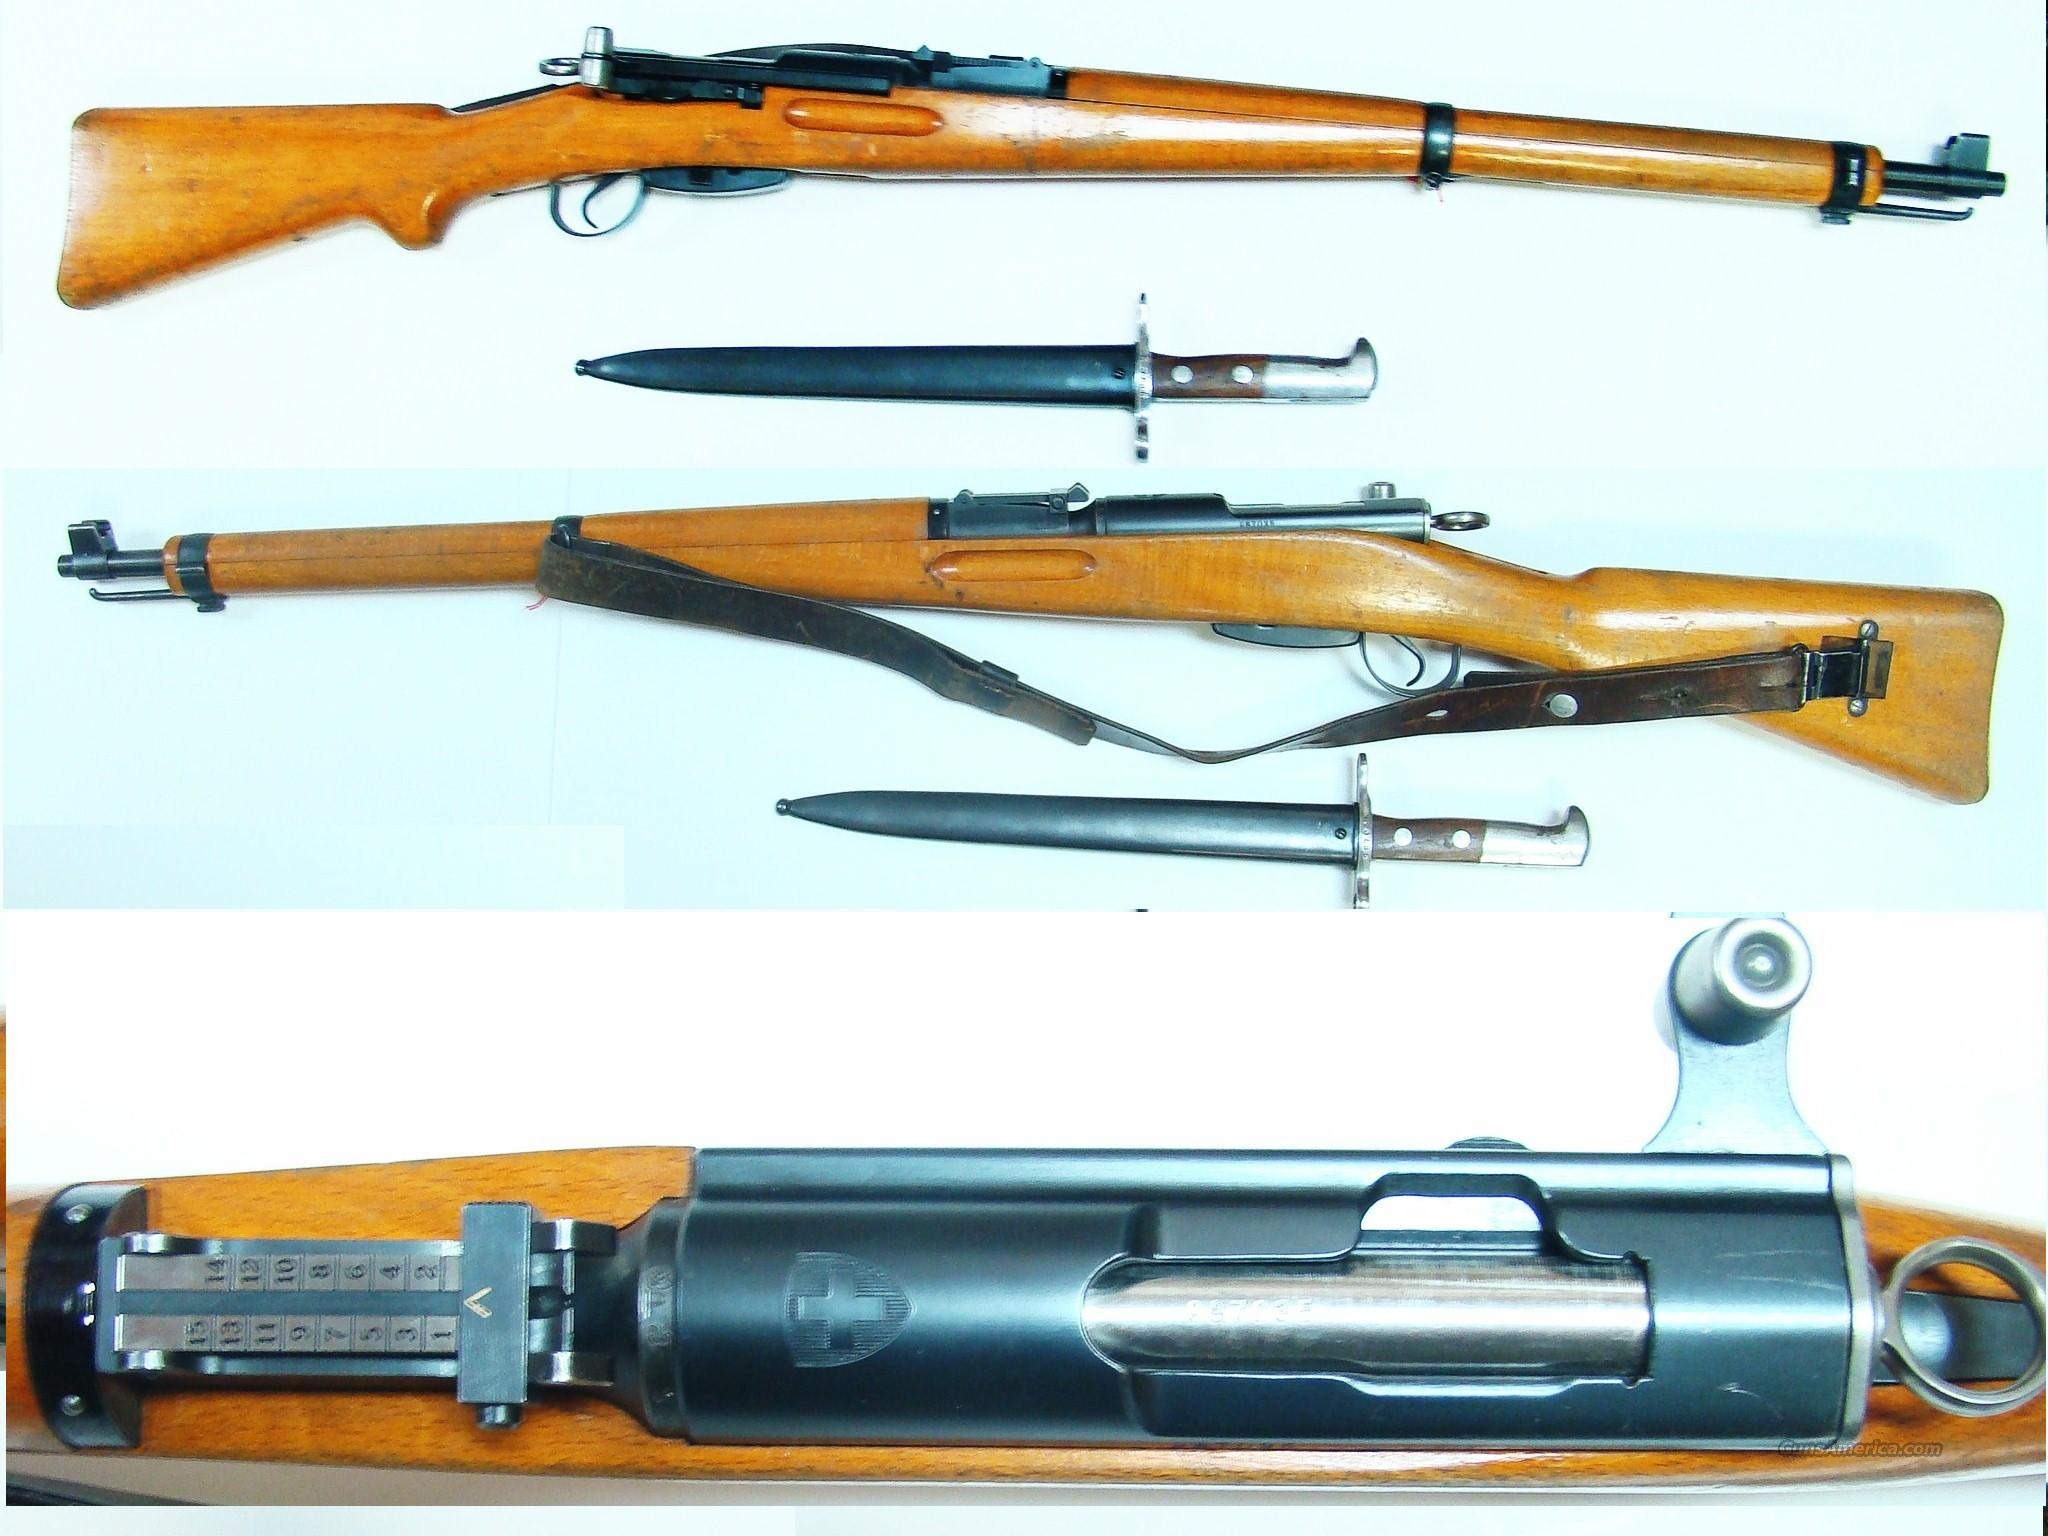 SWISS K31 AND MATCH BAYONET  Guns > Rifles > Military Misc. Rifles Non-US > Shmidt Rubin